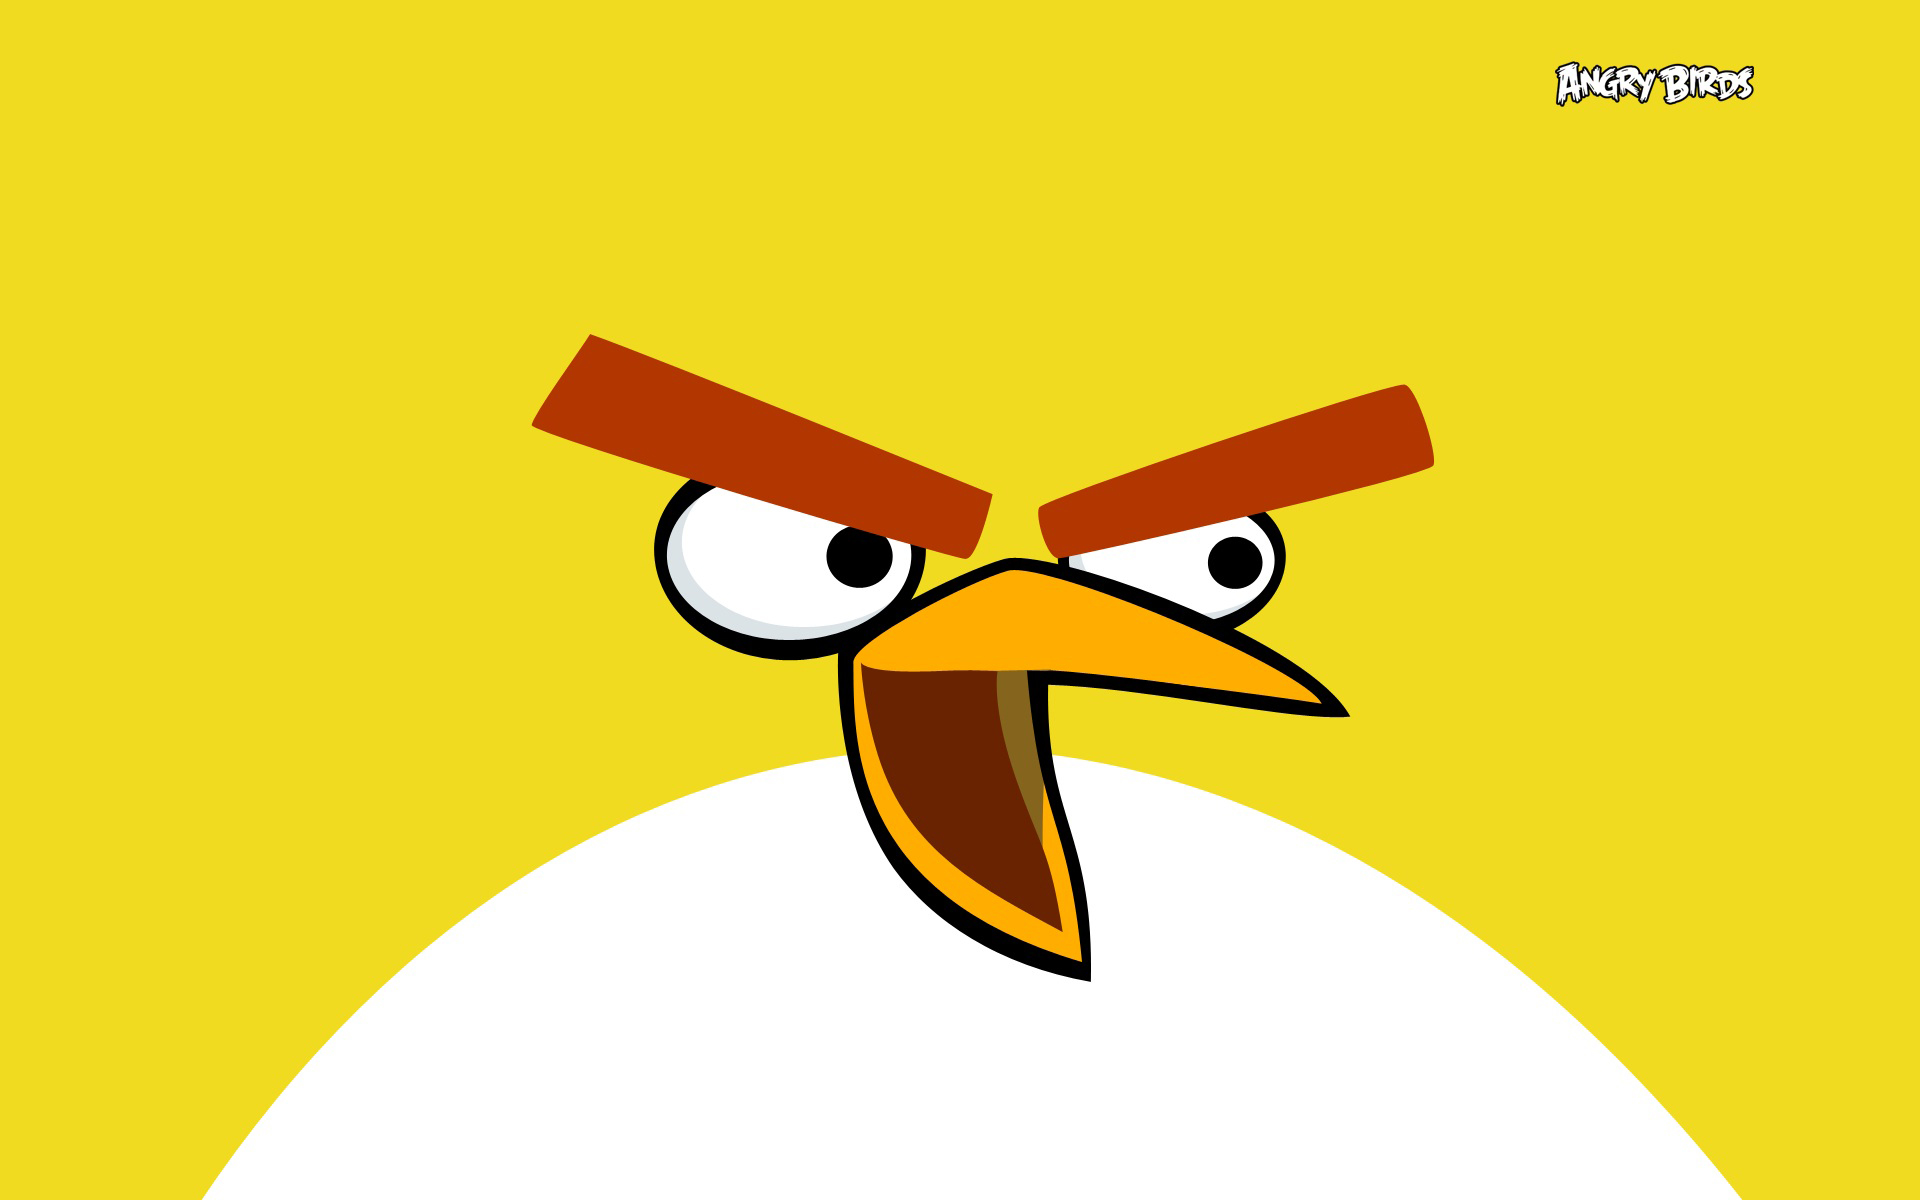 angry birds wallpaper 13231